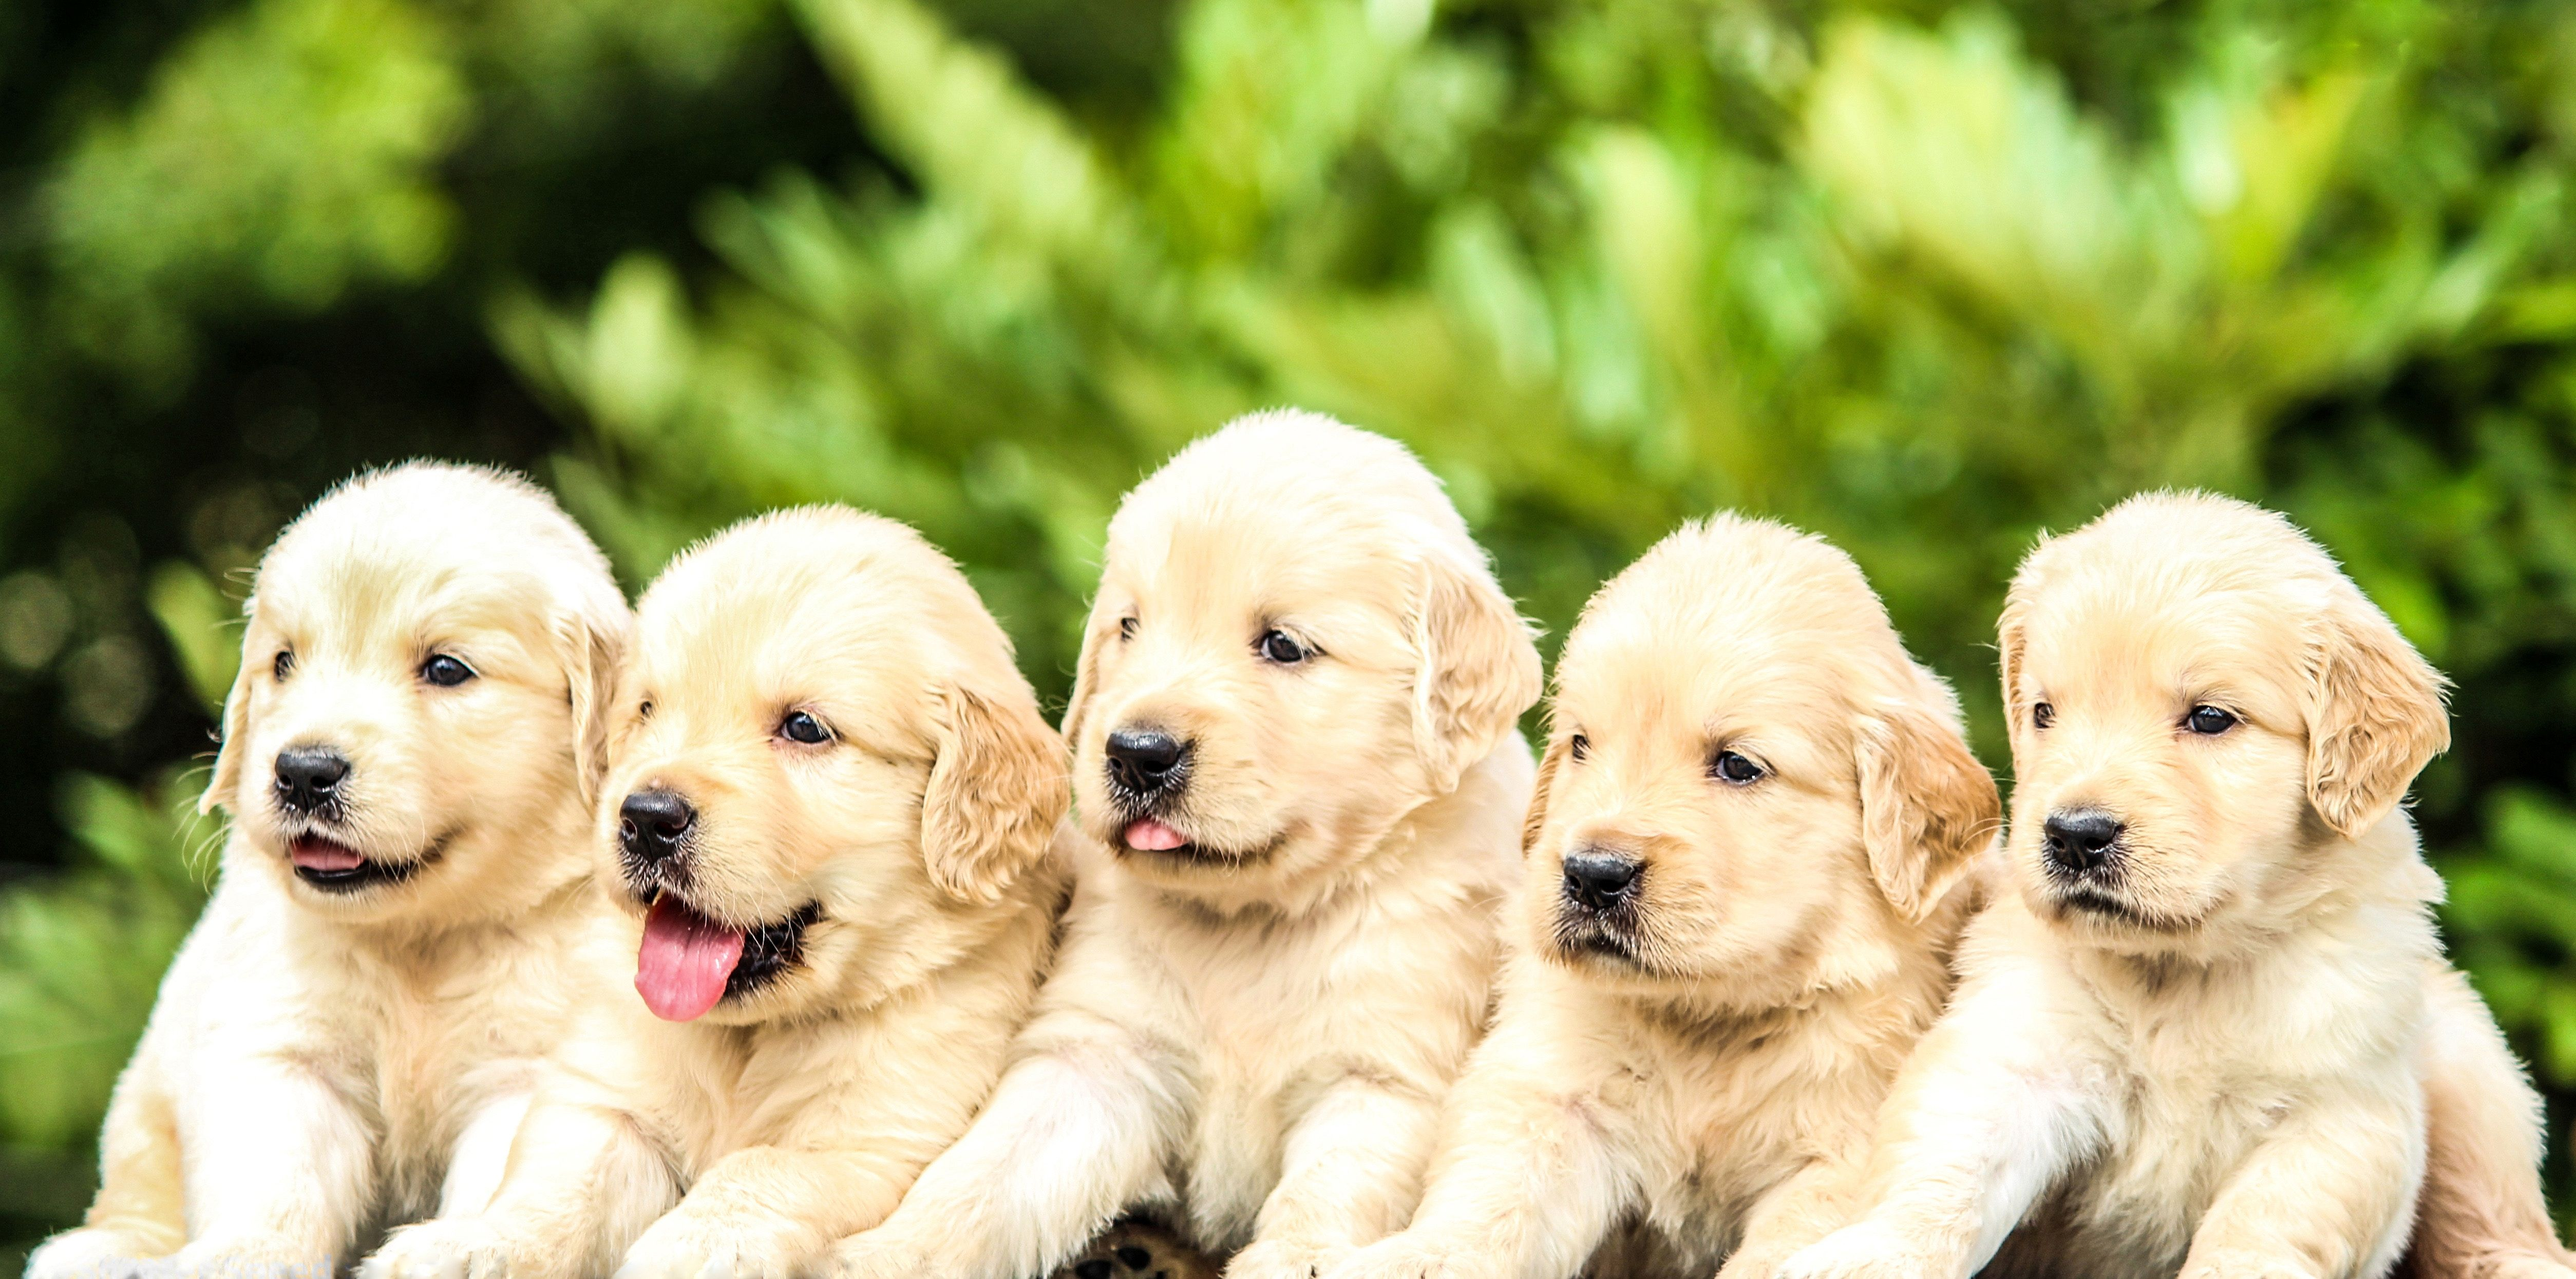 Get Your Dogs Ready Summer Is Coming And You Re Going To Want To Bring Your Dog To Plum Valley S Dog Park Dog Park Happy Animals Dog Ages Cute Puppy Videos